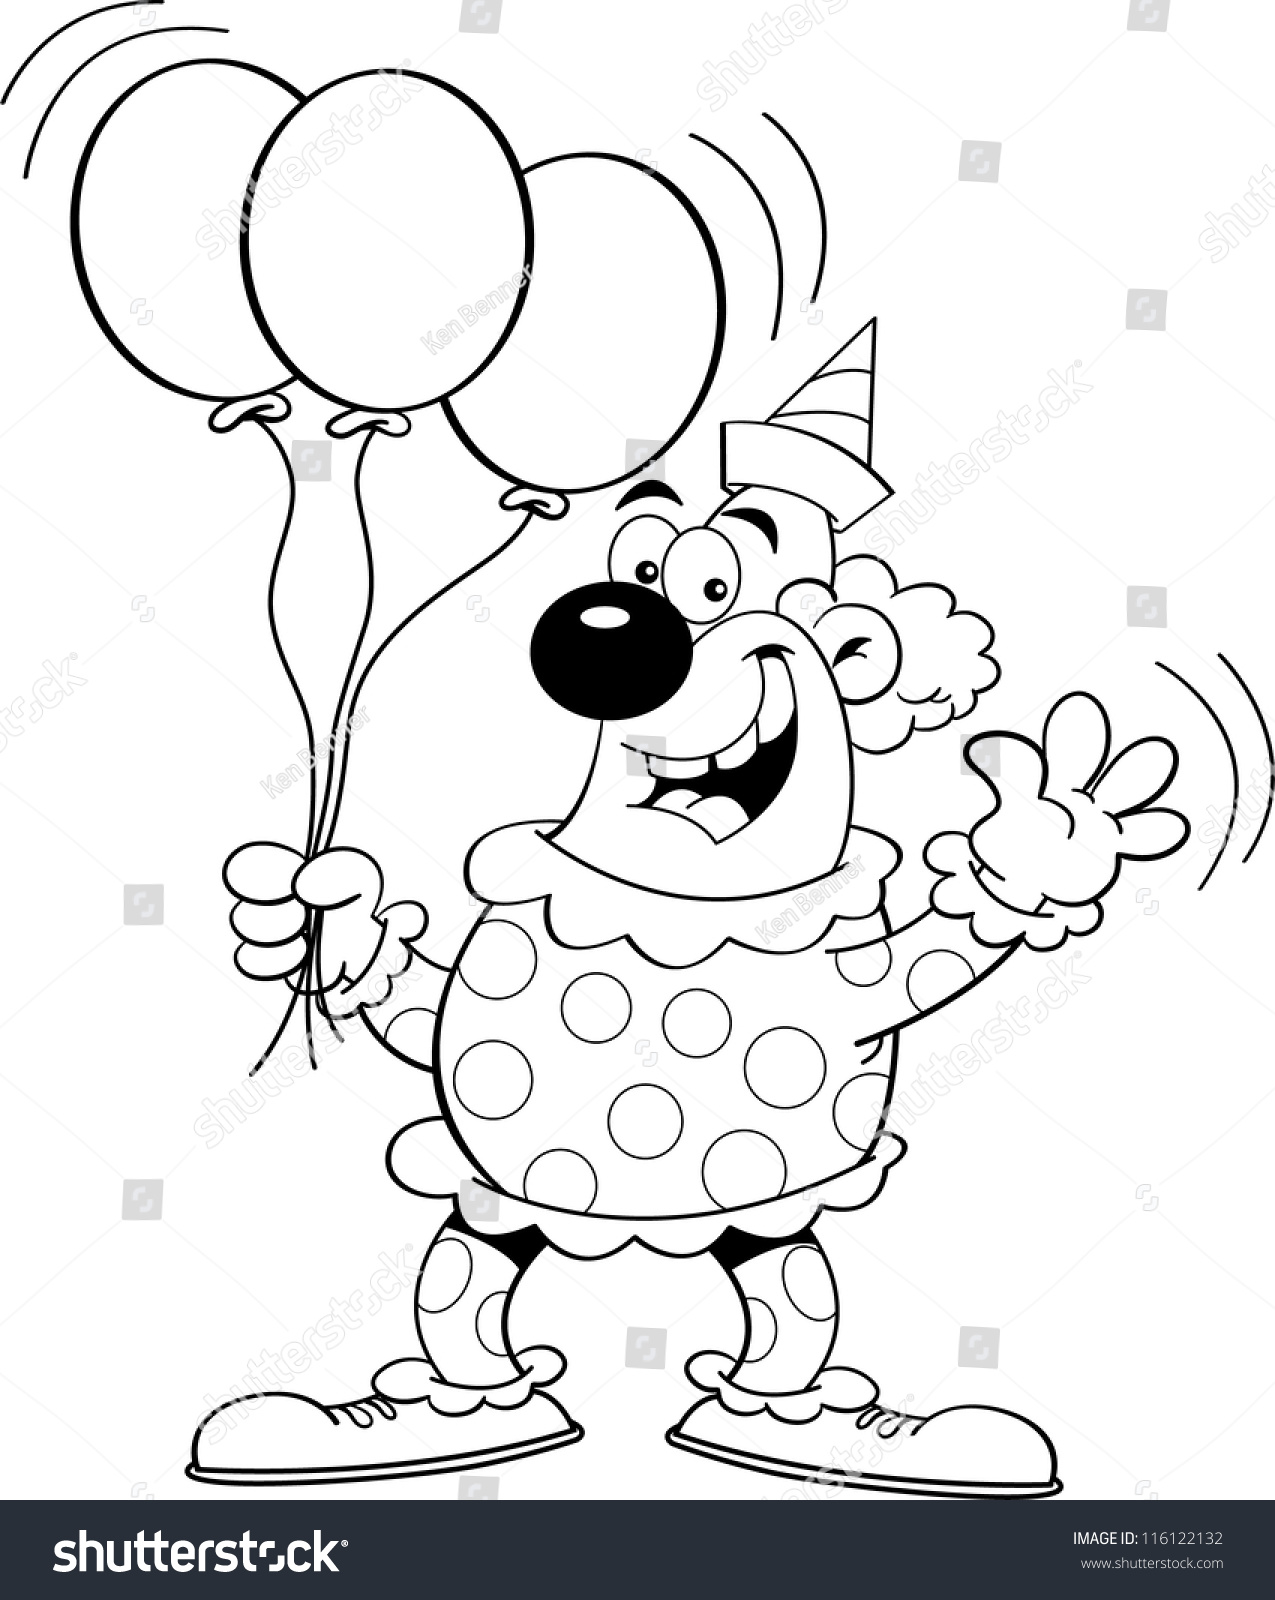 Black White Illustration Clown Holding Balloons Stock Illustration ...